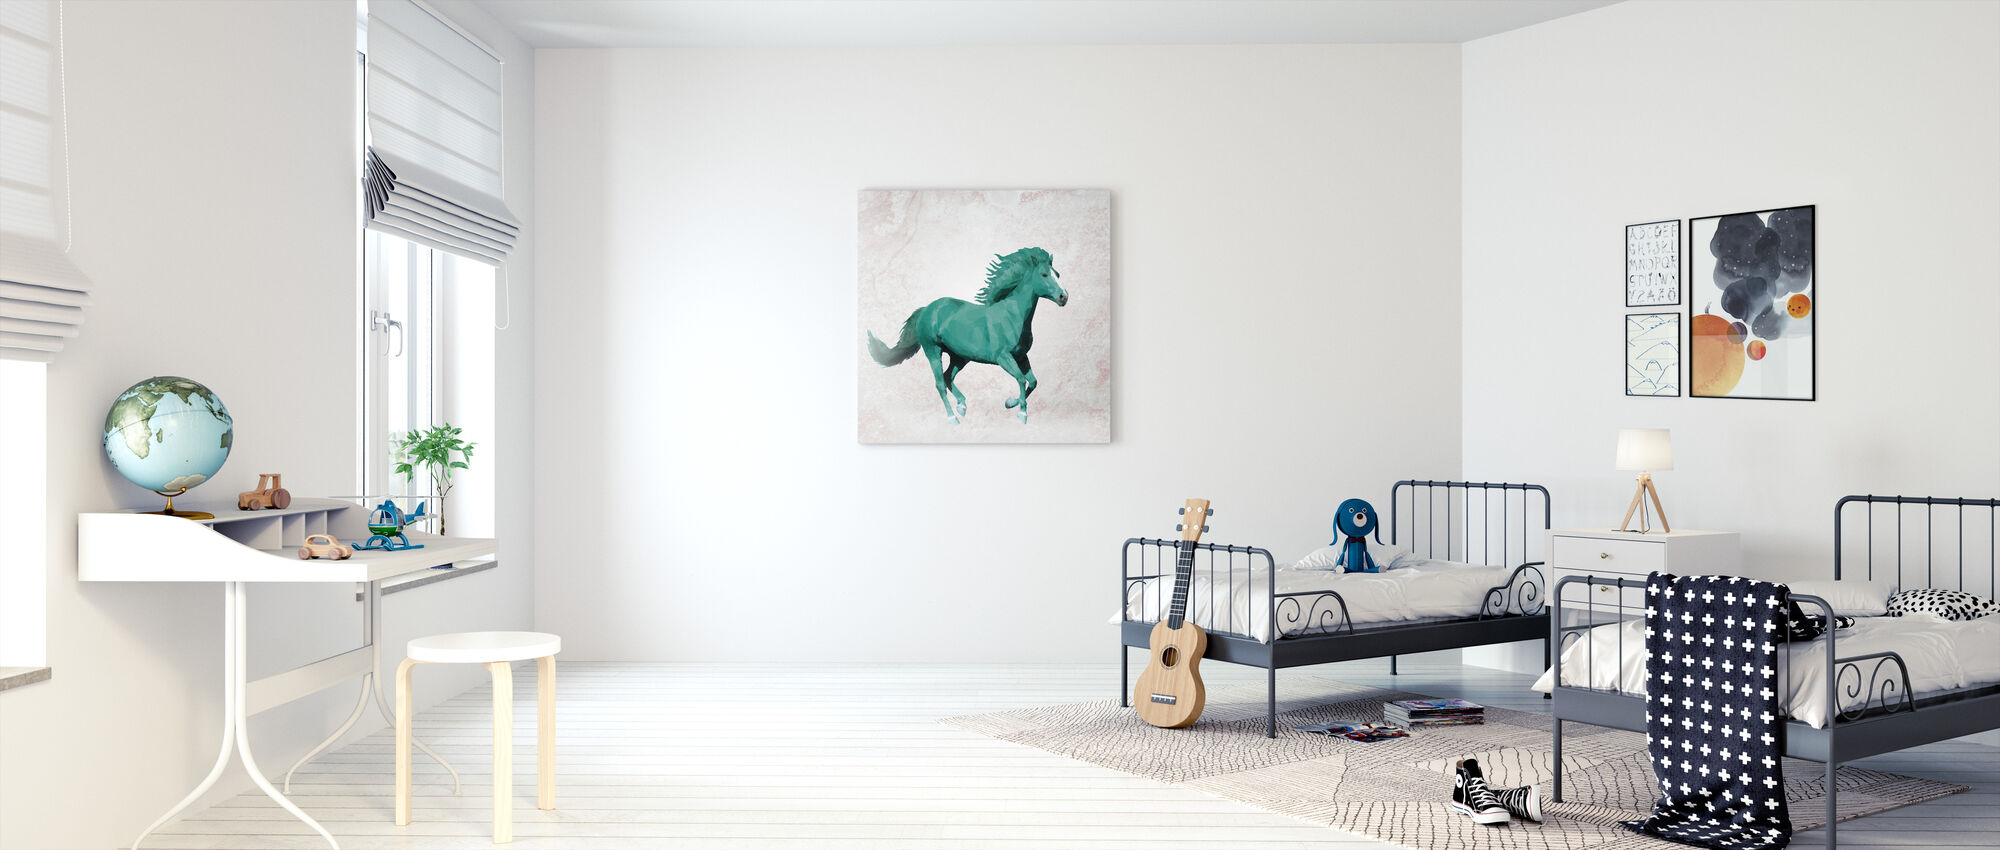 Polygon Horsy Crazy - Canvas print - Kids Room